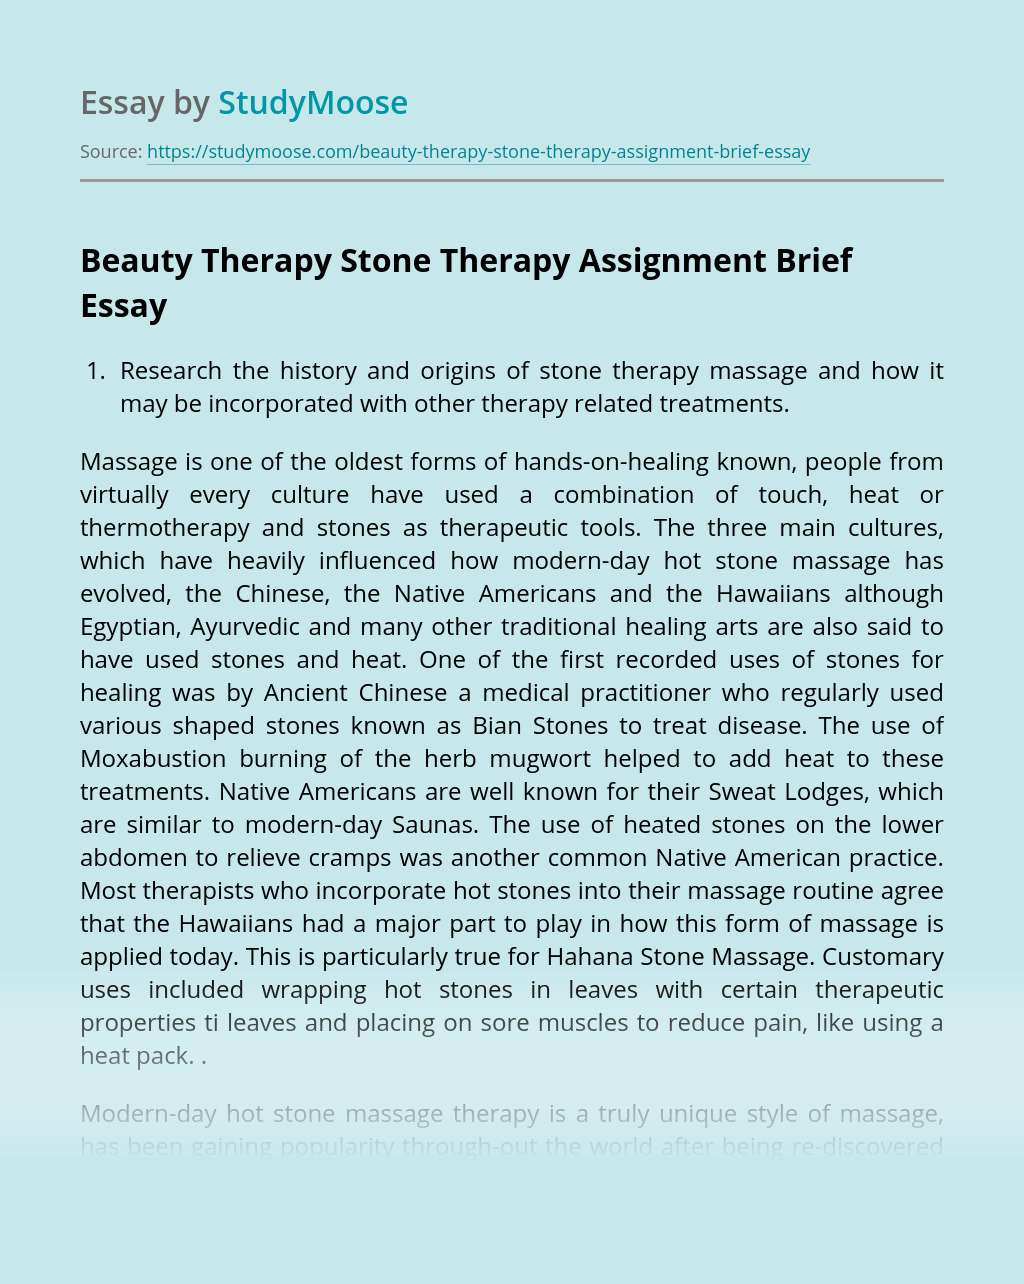 Beauty Therapy Stone Therapy Assignment Brief